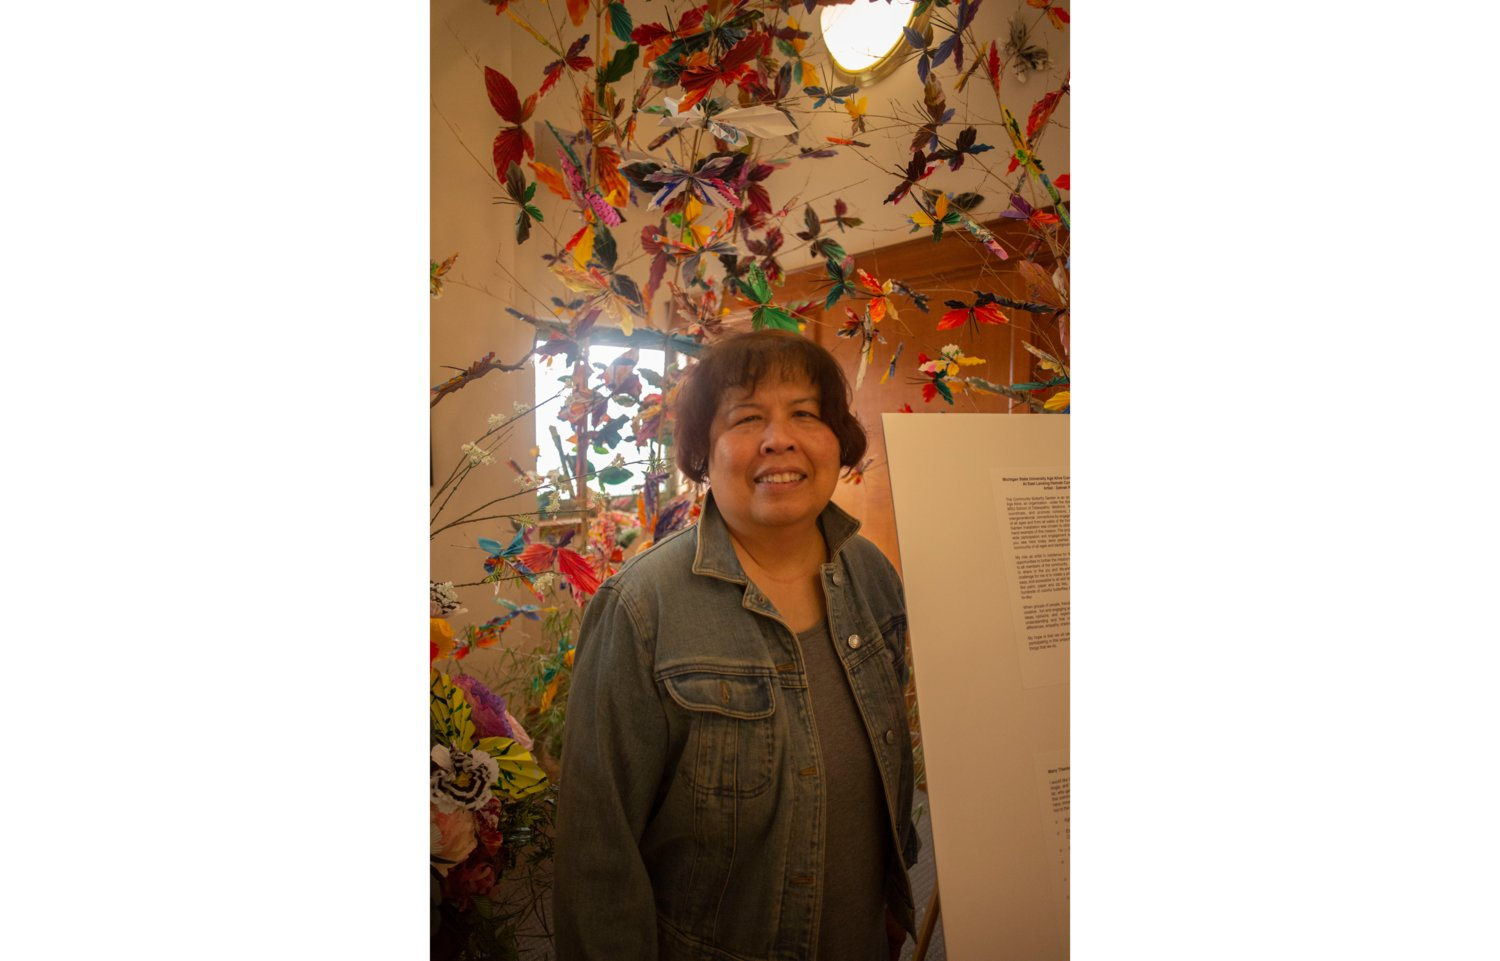 Zahrah Resh is a cancer survivor and artist who got recognized for her paper art after making 6,500 butterflies with cancer patients in Grand Rapids.